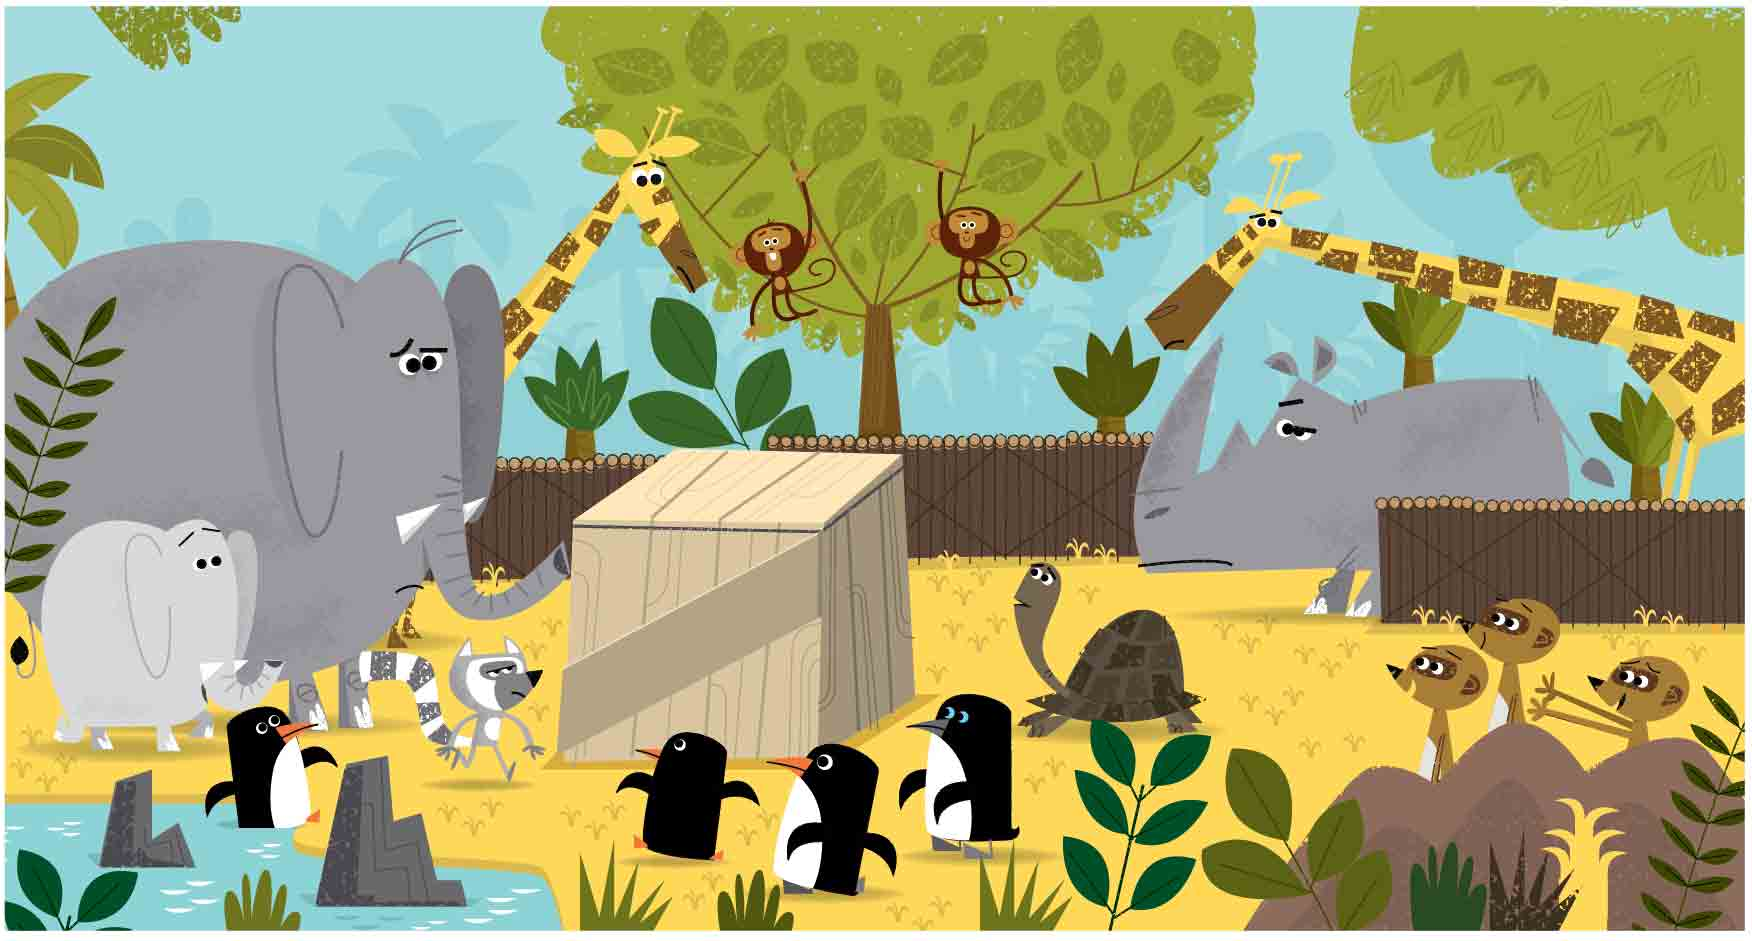 Zoo scene with elephant-penguins-turtles-giraffes-monkeys-flat-1950s-1960s-retro cartoon style